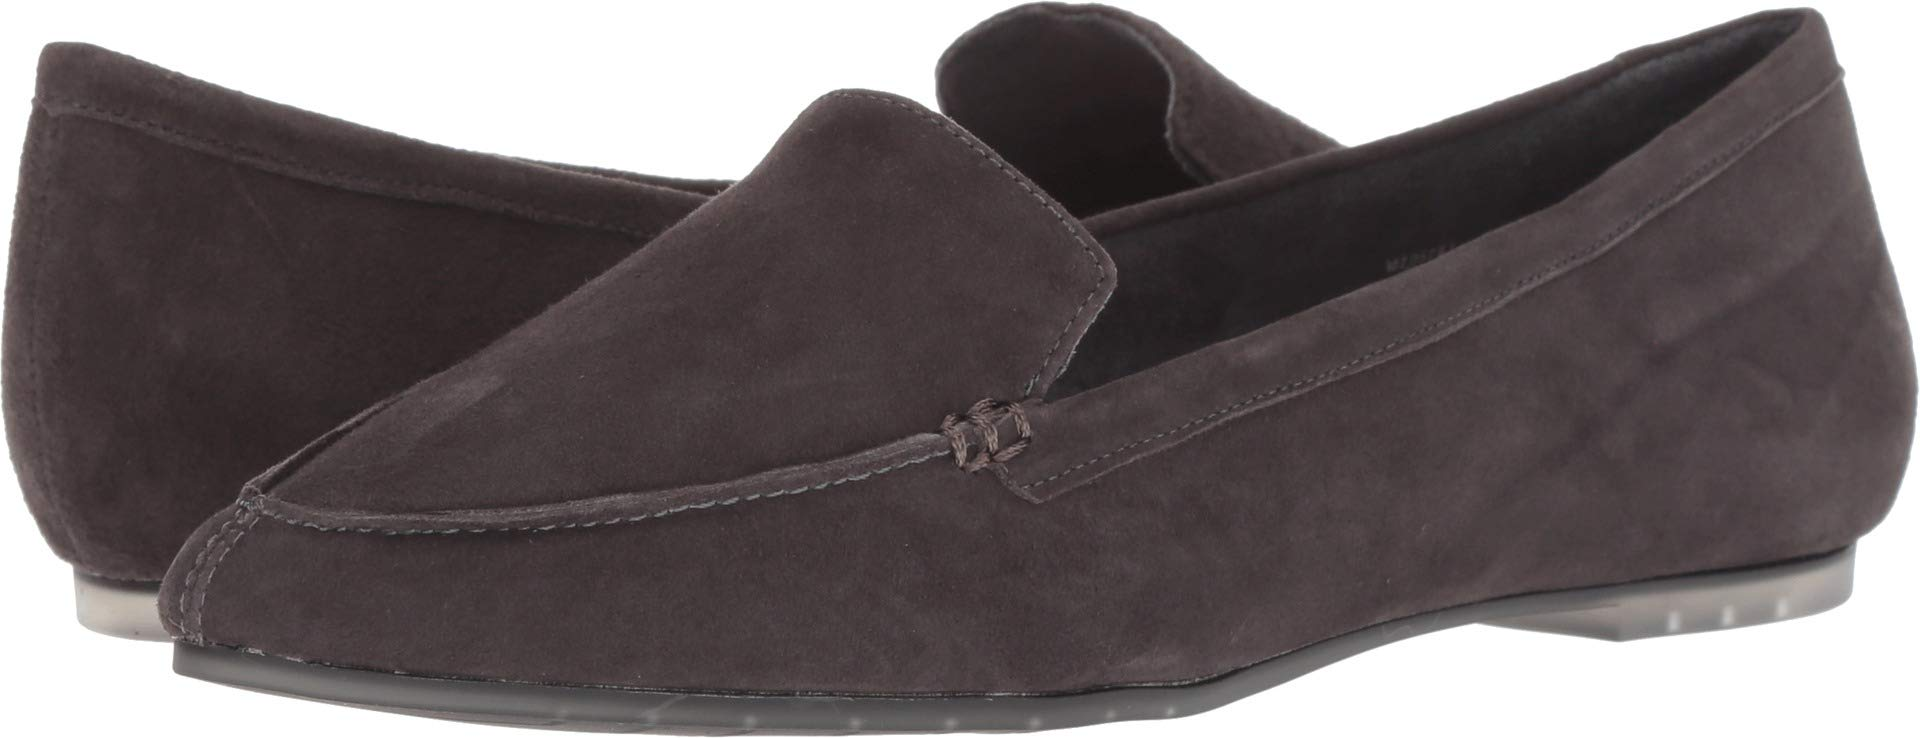 Me Too Women's Audra Dark Grey Suede 7 M US M